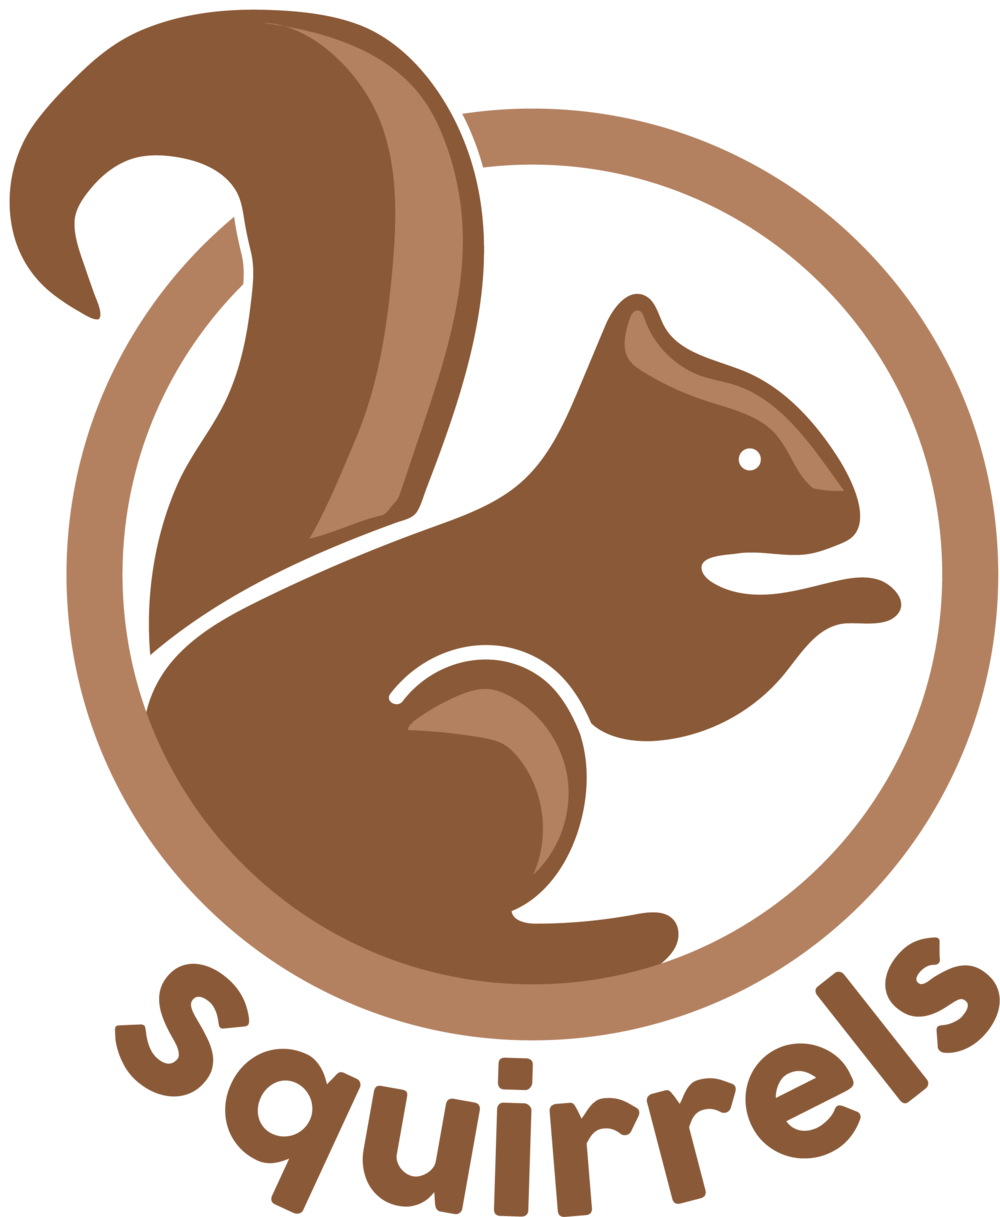 squirrels_icon[1].png